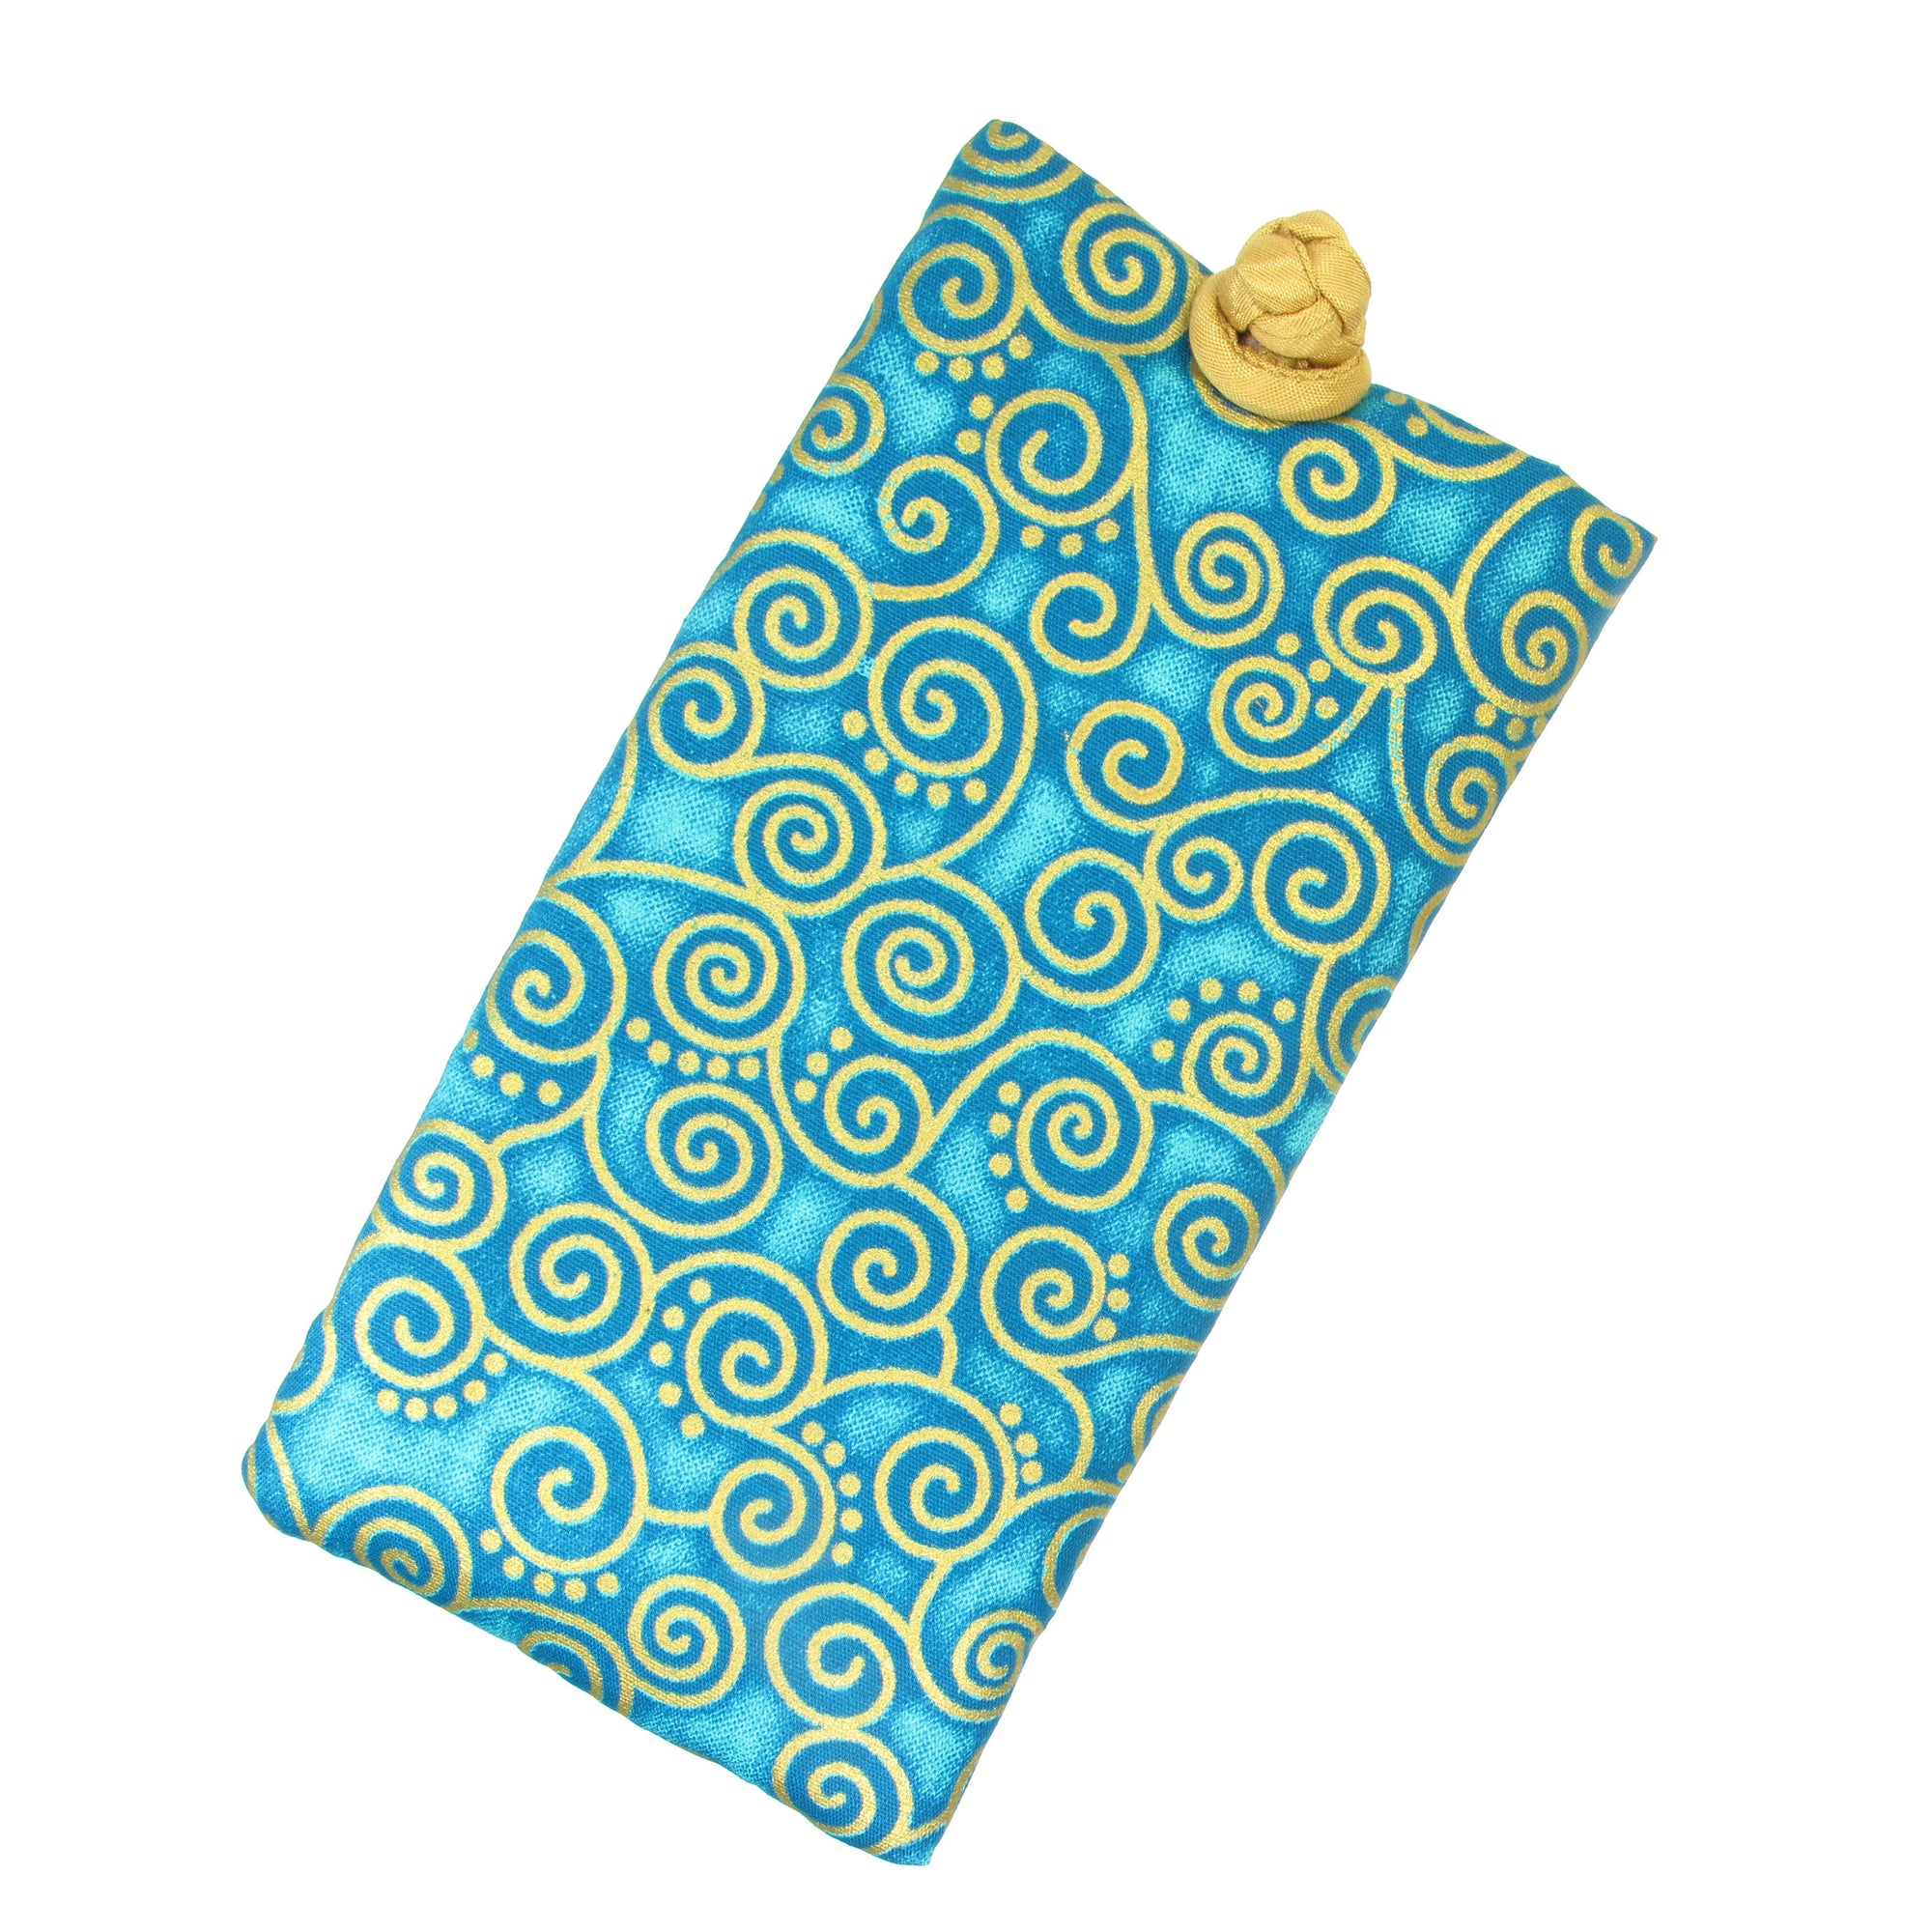 Cotton Soft Eyeglass Case, Aquamarine